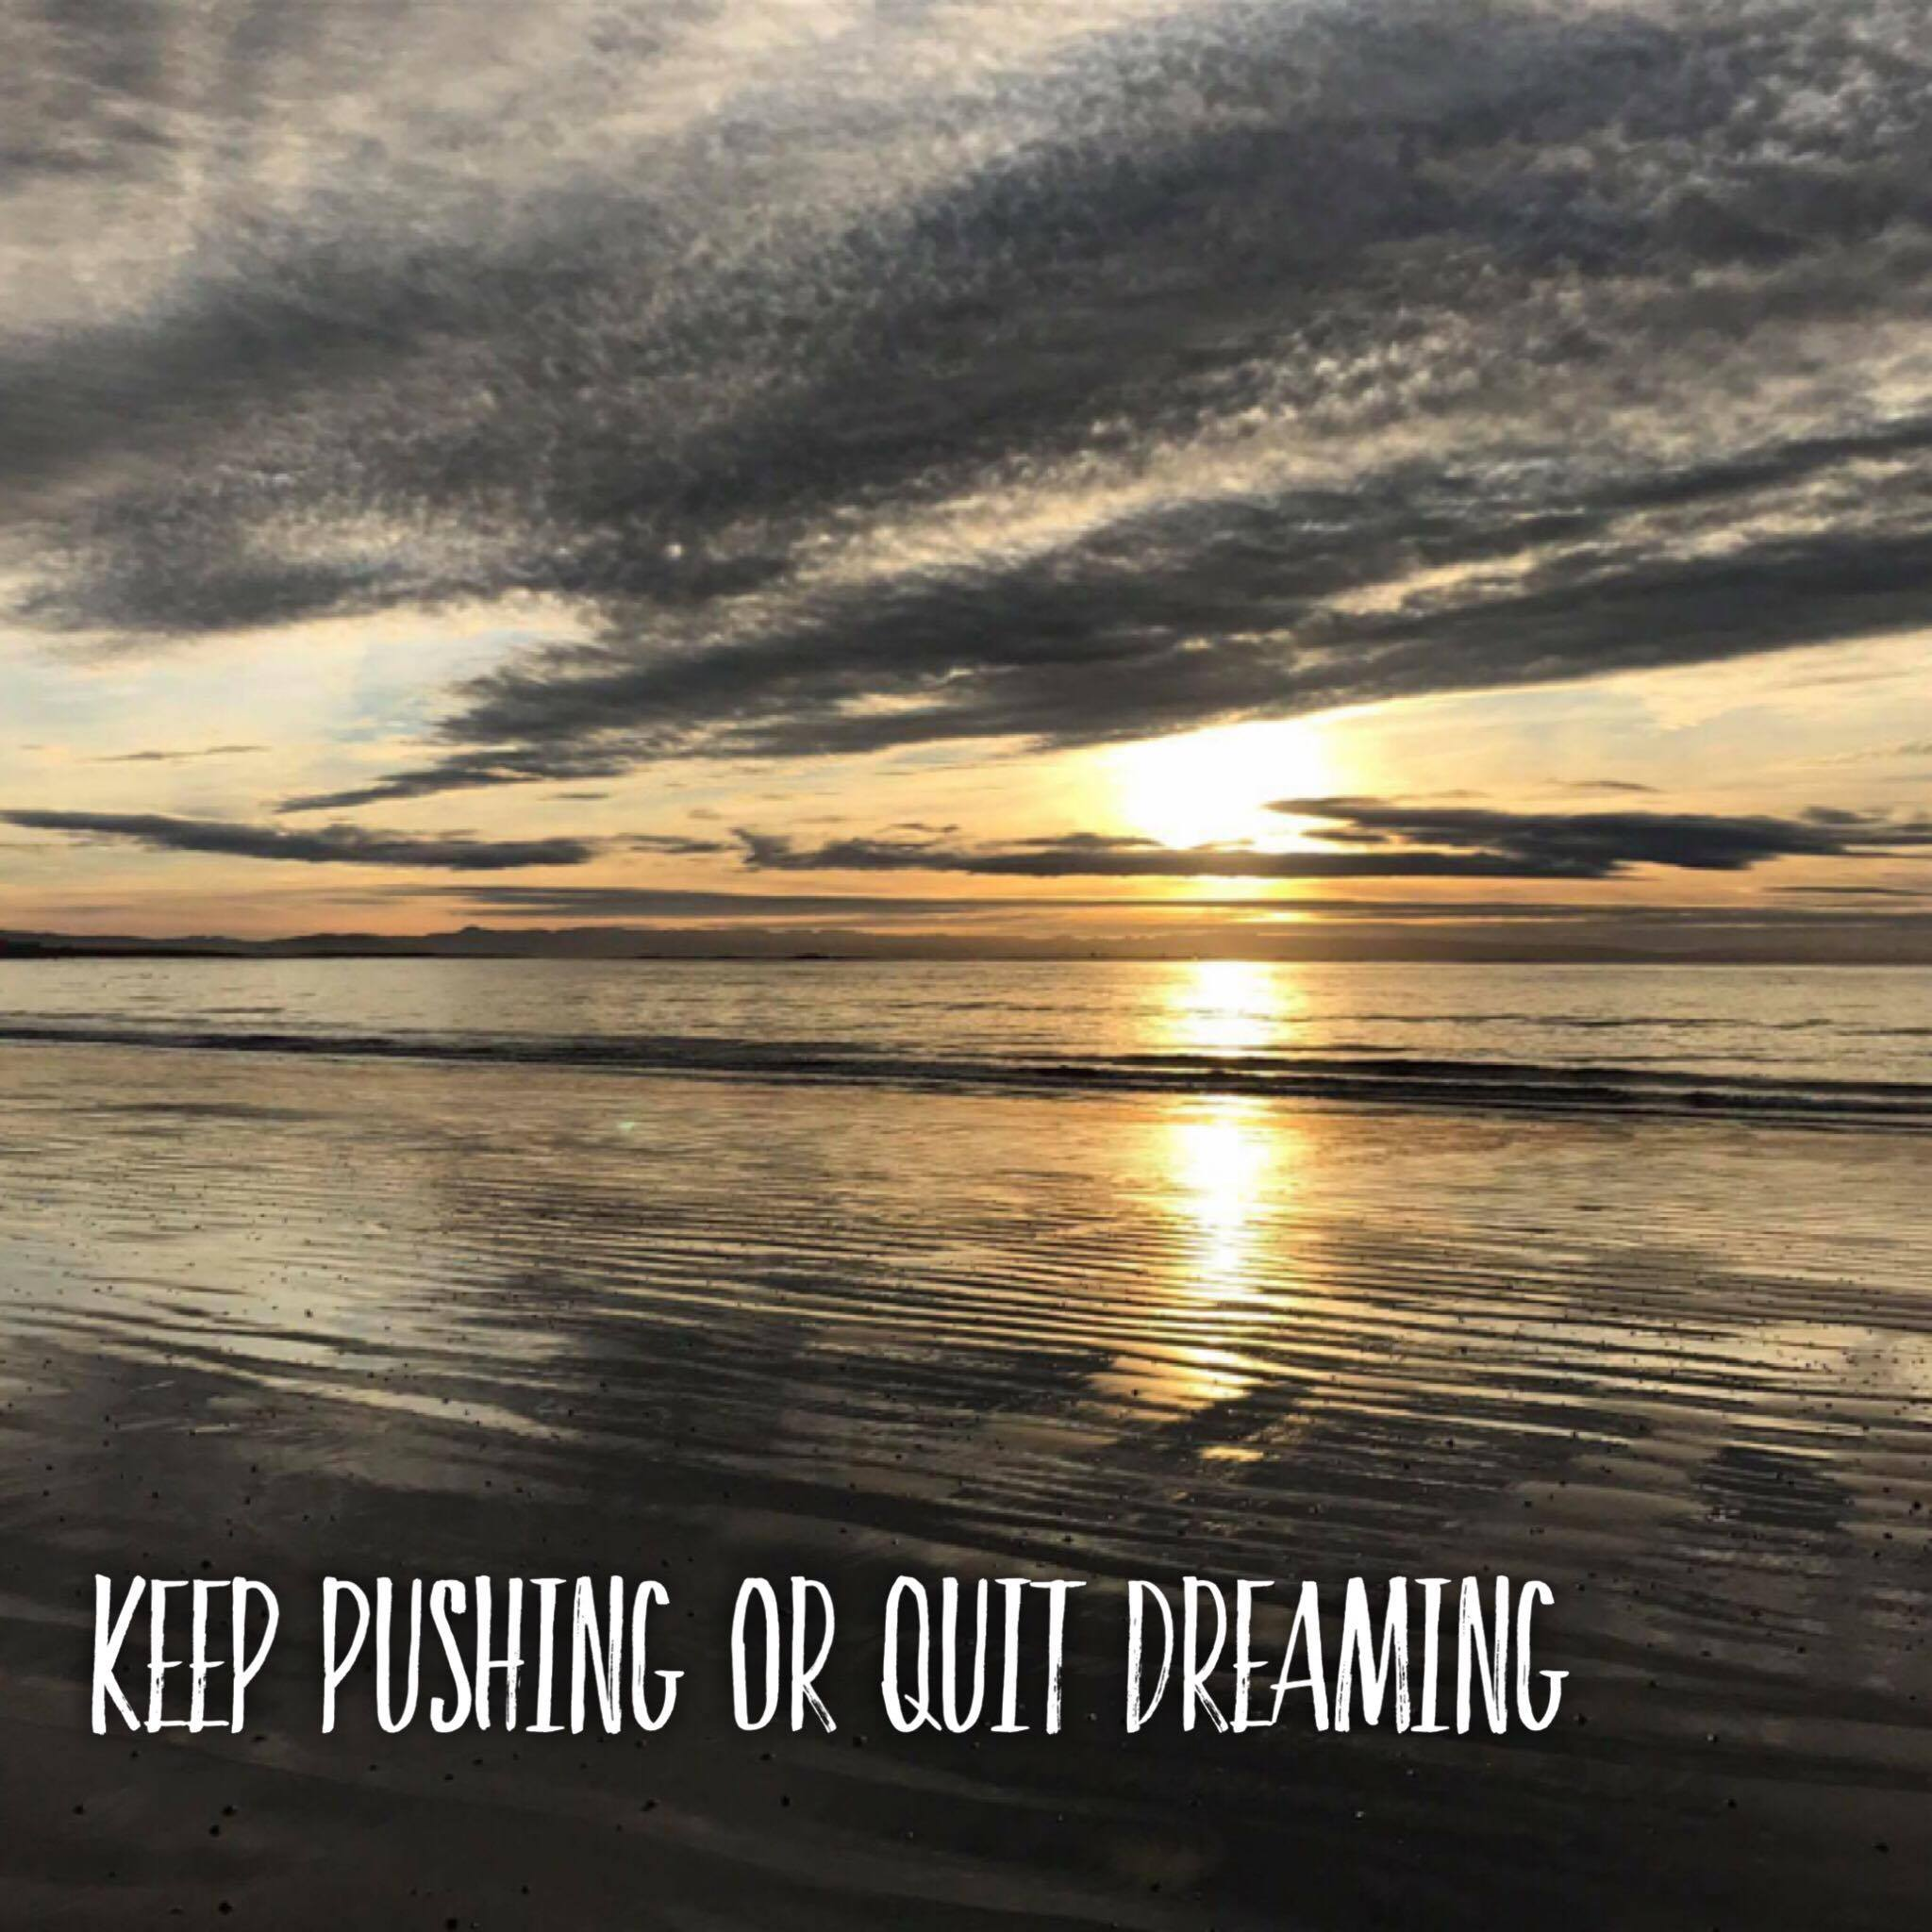 Keep Pushing or Quit Dreaming